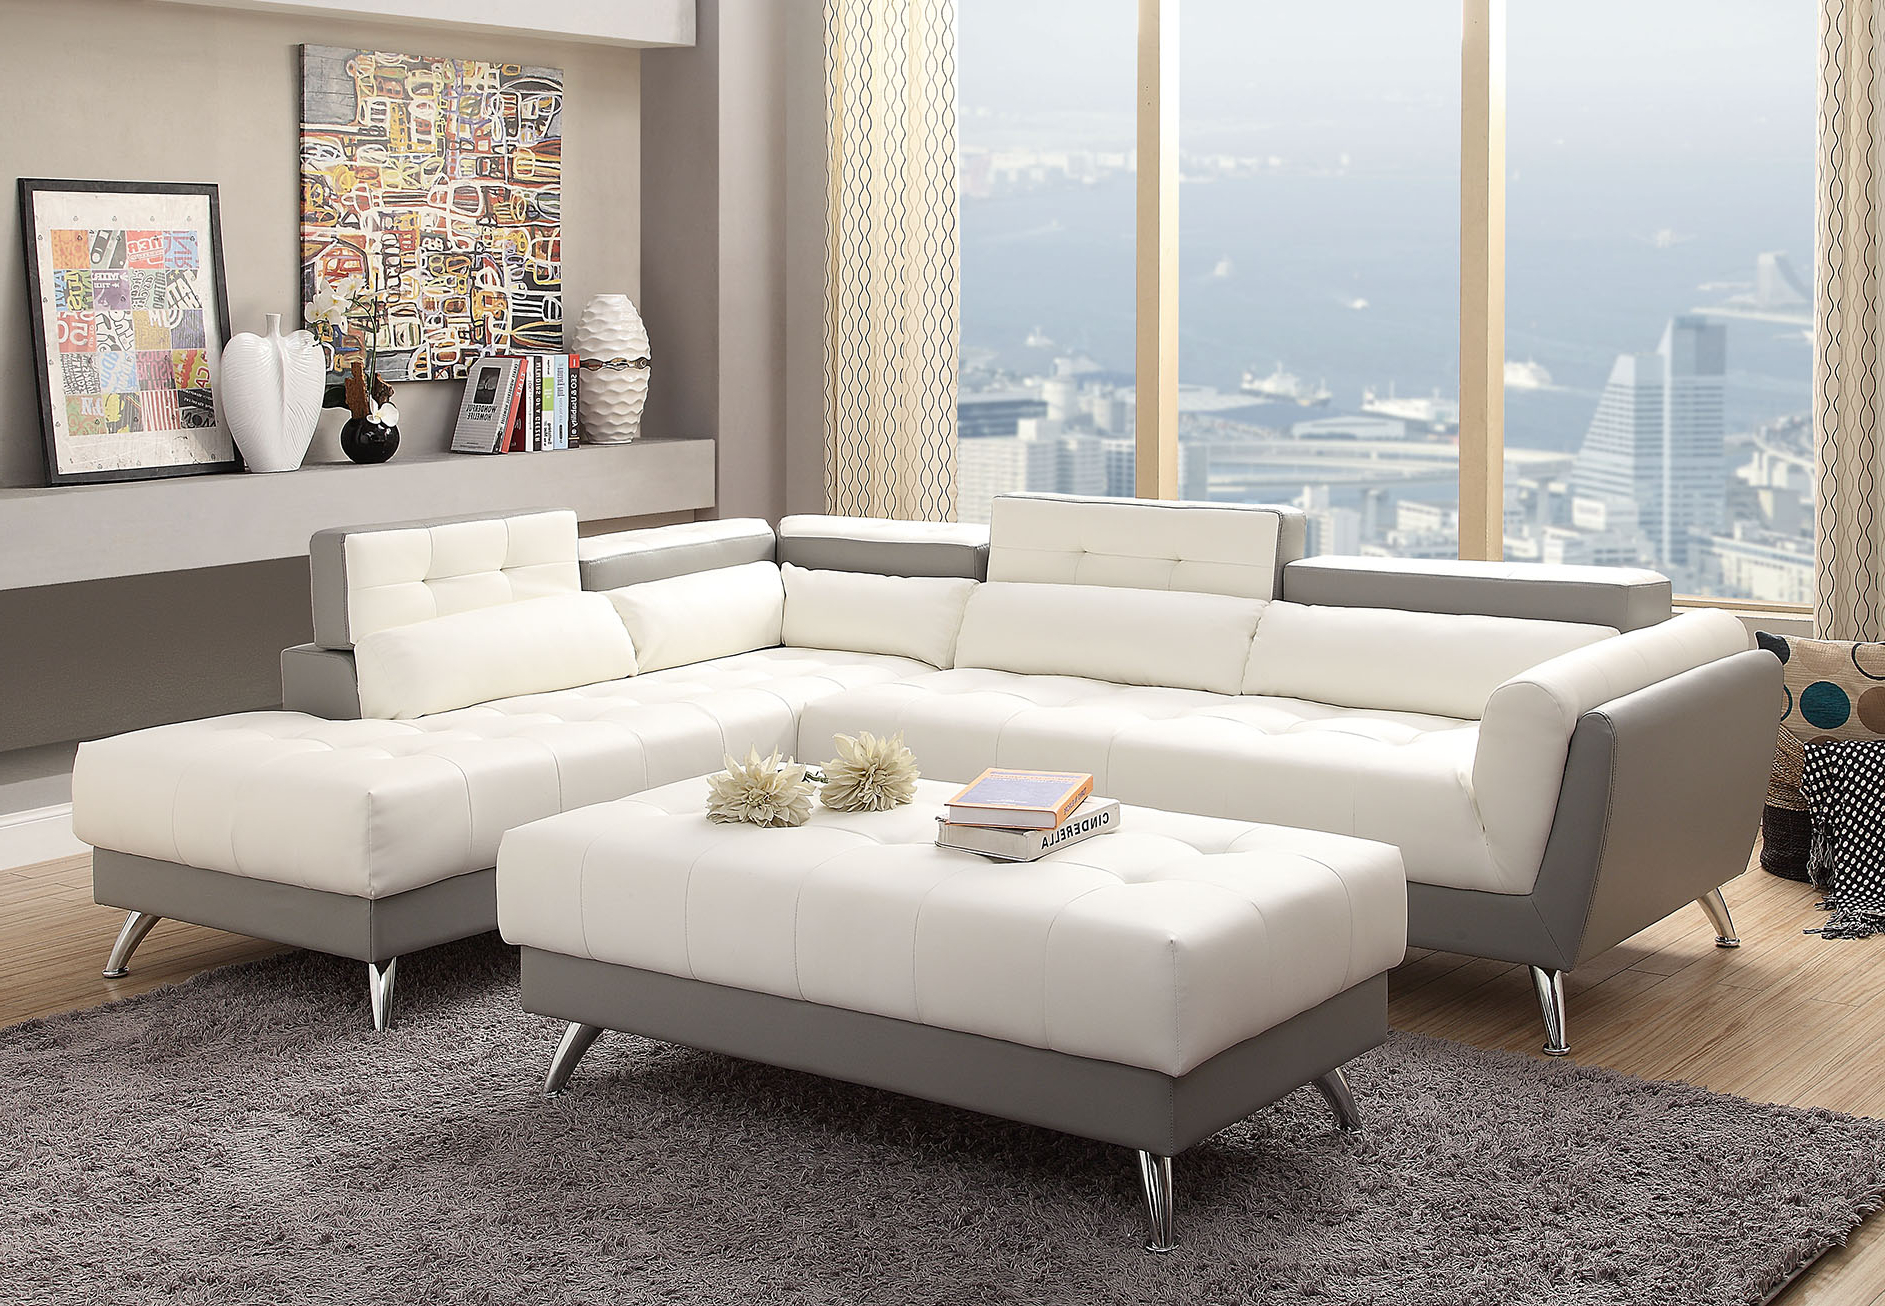 Most Popular Contemporary Sectional Sofa – Miami Gallery Furniture Inside Wynne Contemporary Sectional Sofas Black (View 17 of 20)